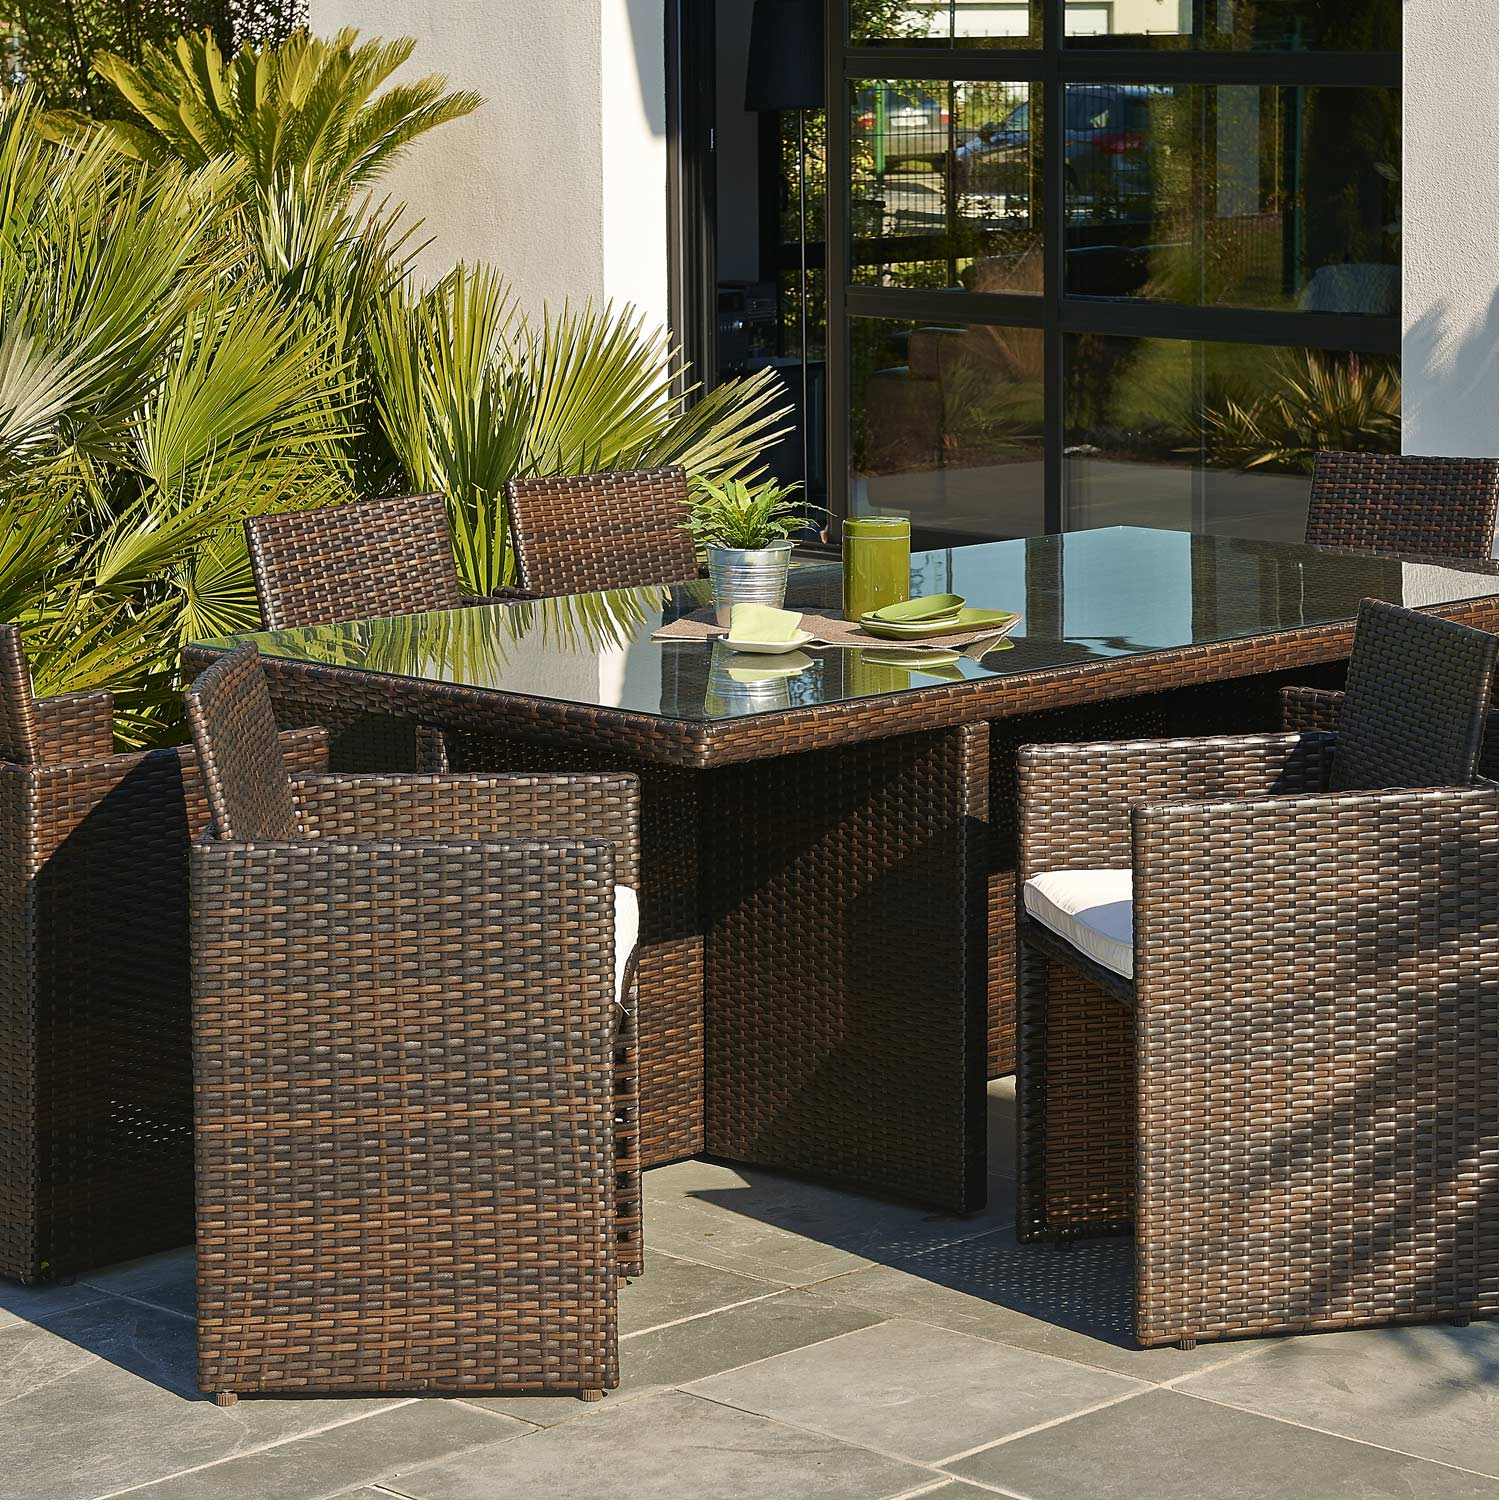 salon de jardin encastrable r sine tress e marron 8 personnes leroy merlin. Black Bedroom Furniture Sets. Home Design Ideas